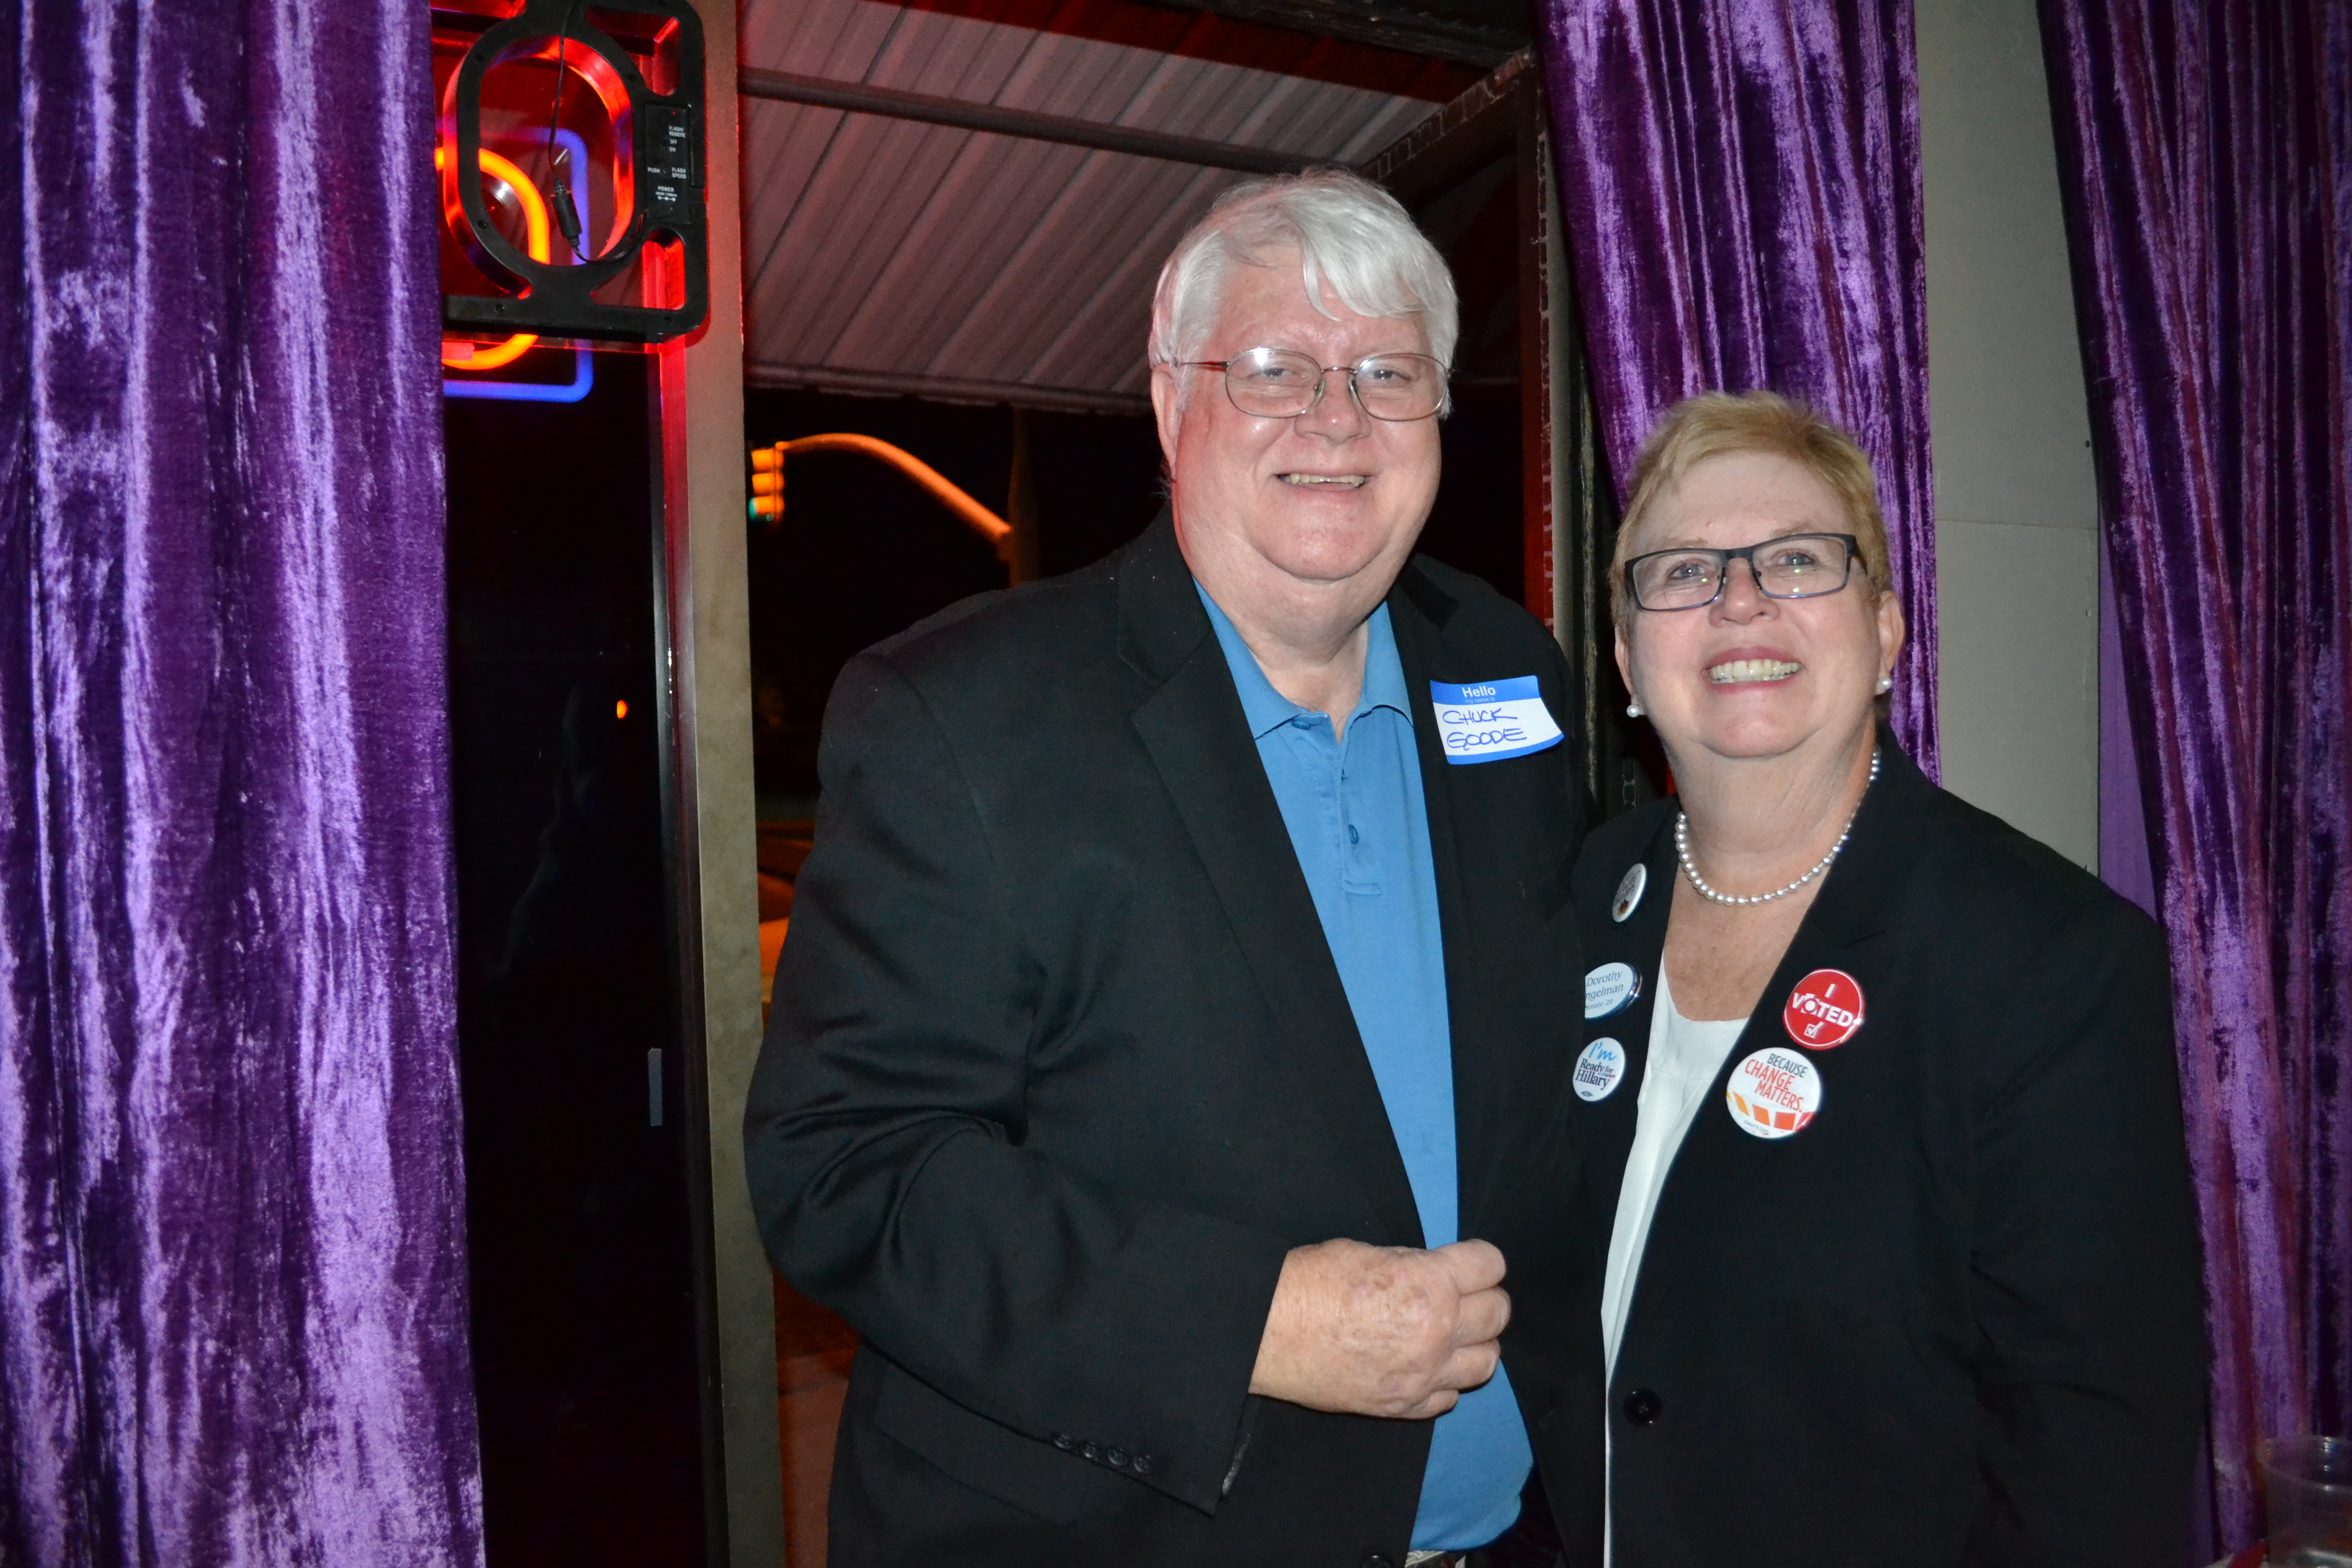 Democratic candidates for State Senate District 29, Dorothy Engelman, and State House District 71, Chuck Goode, attend a party for Washington County Democrats, St. George, Utah, Nov. 8, 2016 | Photo by Joseph Witham, St. George News